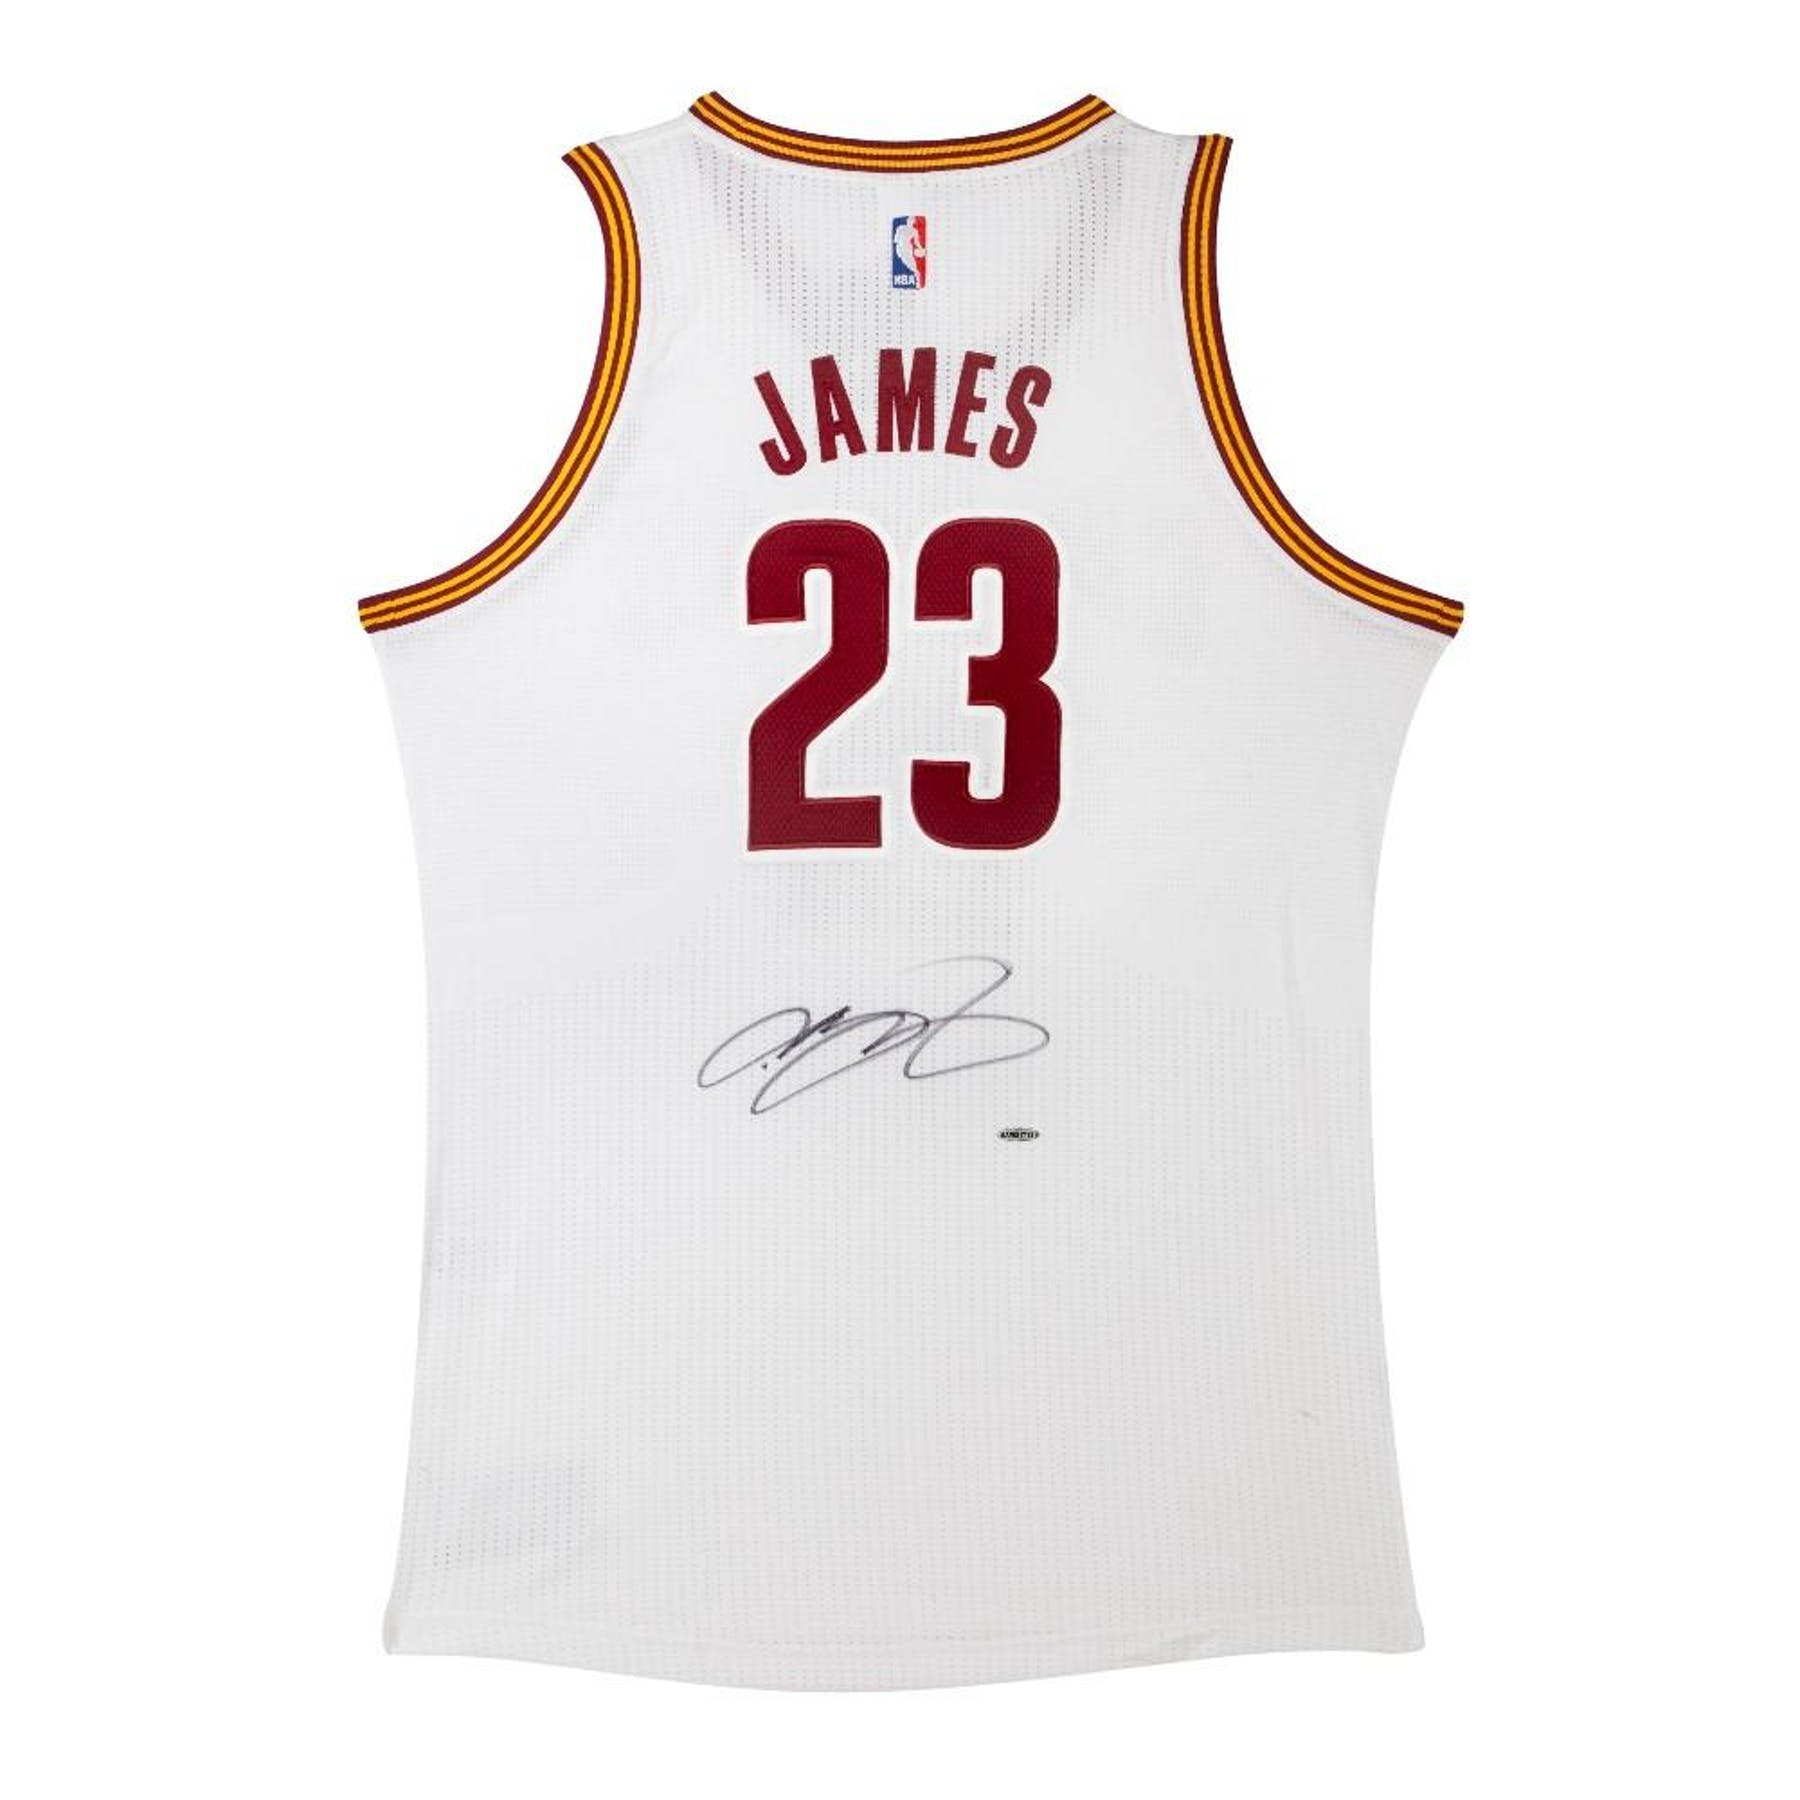 4f24913f51be LeBron James Autographed Cleveland Cavaliers White Basketball Jersey UDA